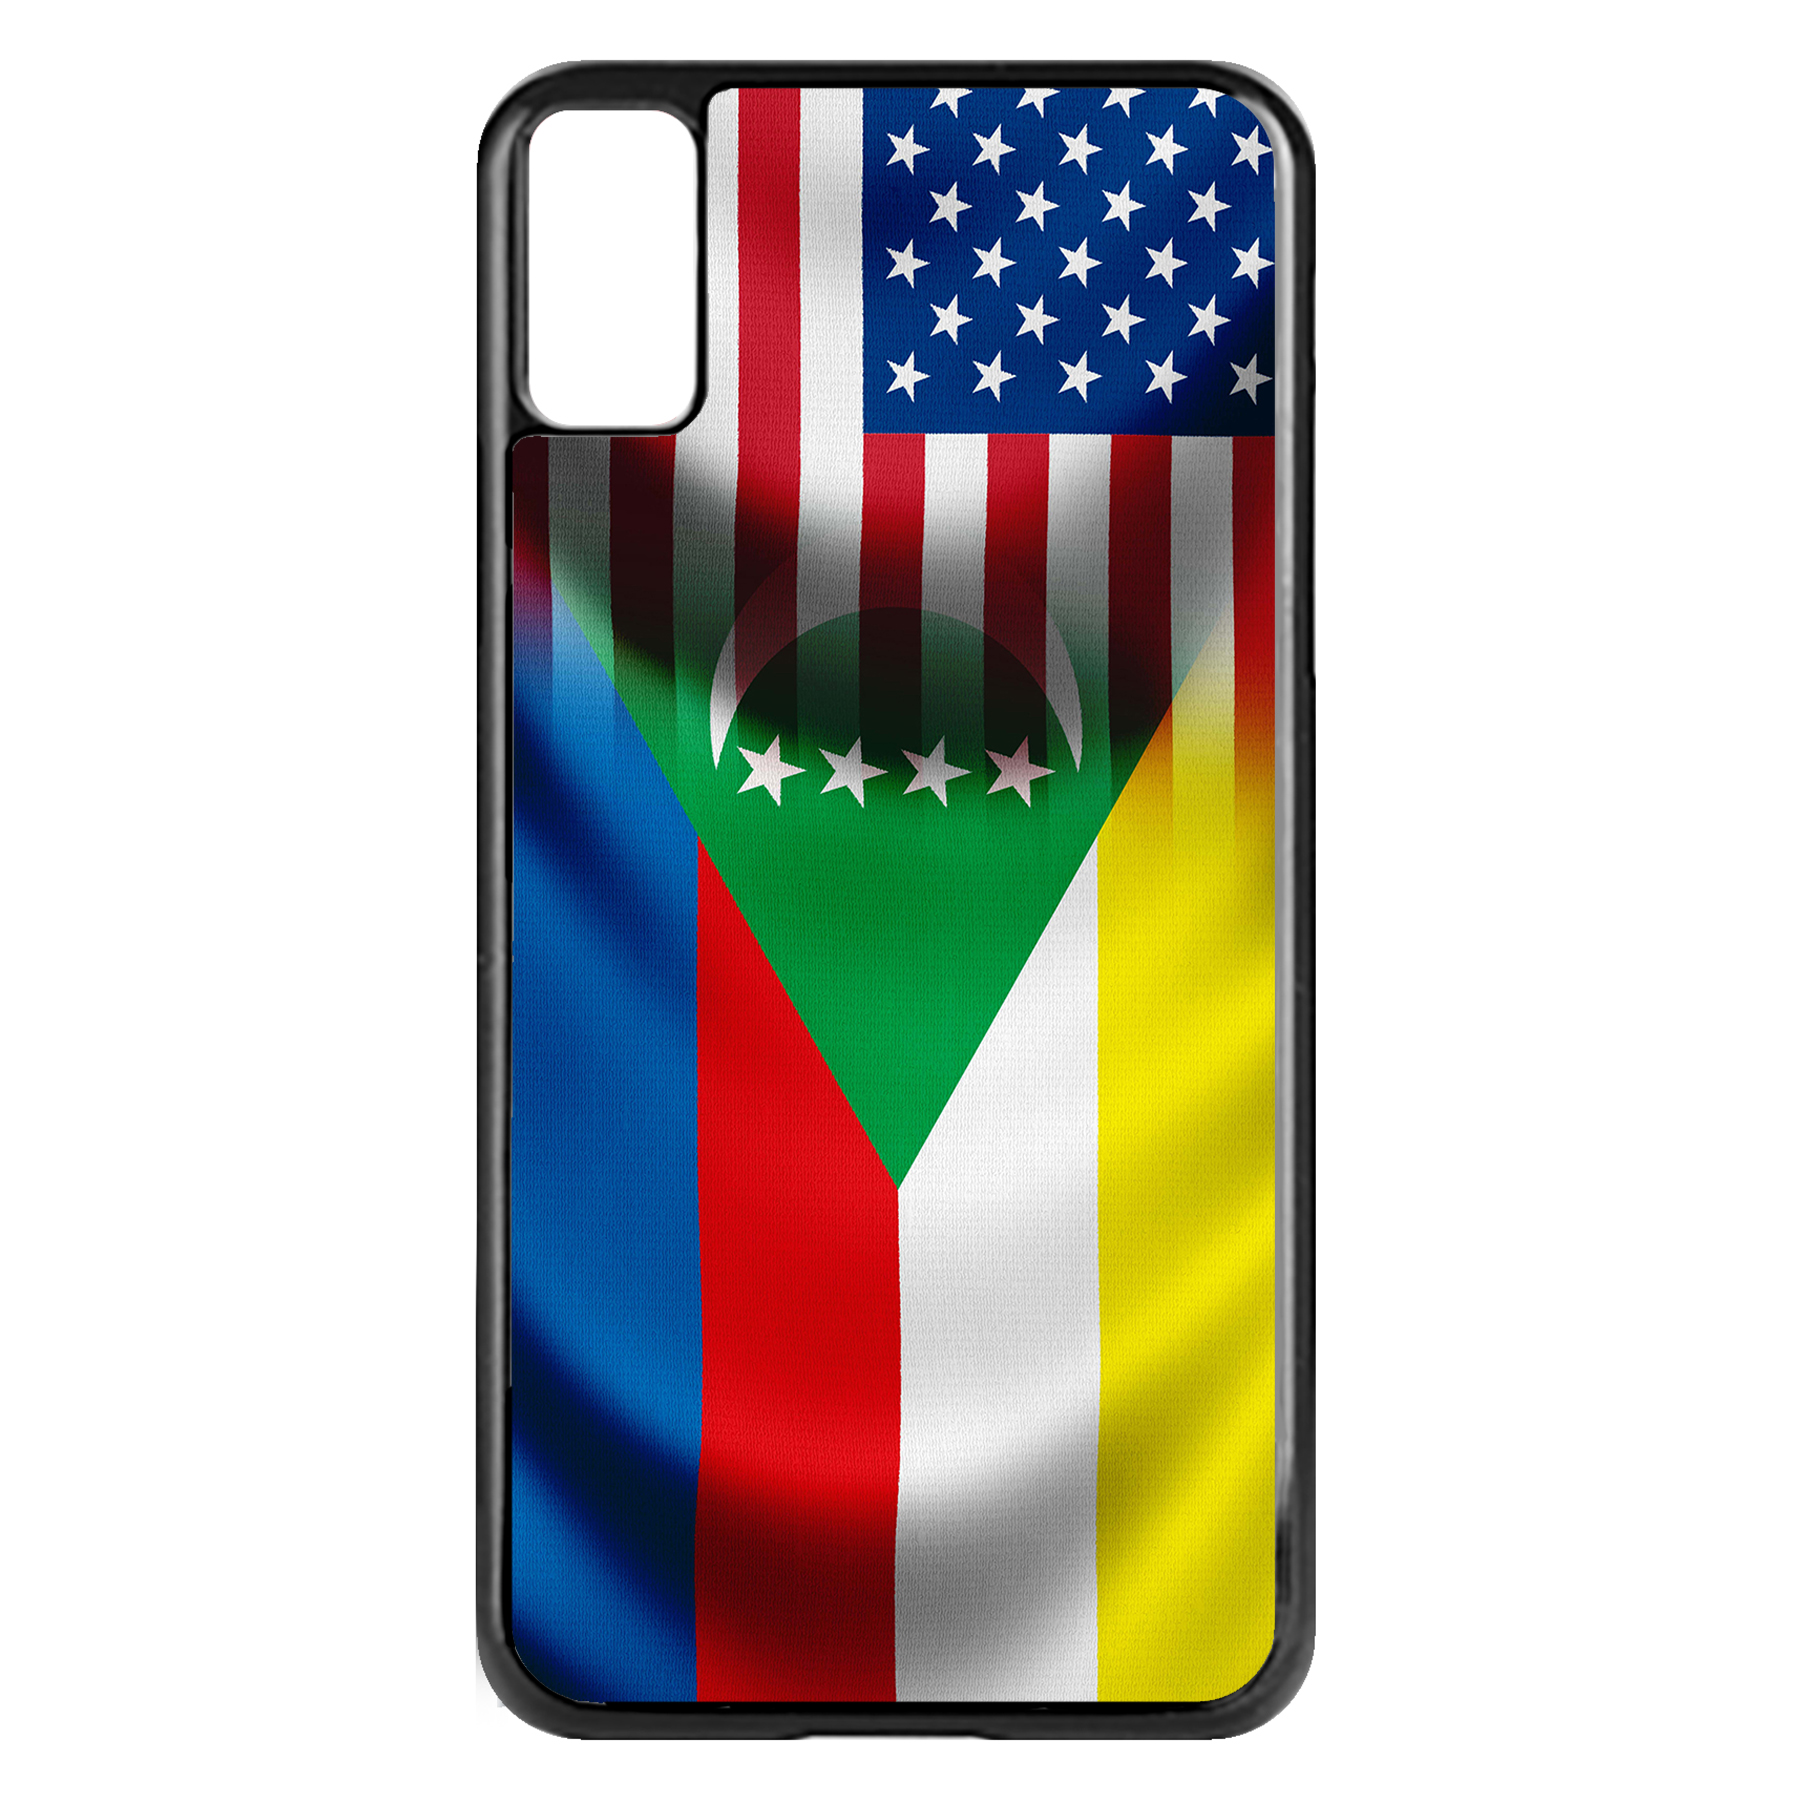 Apple-iPhone-Case-with-Flag-of-Comoros-Comorian-Many-Design-Options thumbnail 35